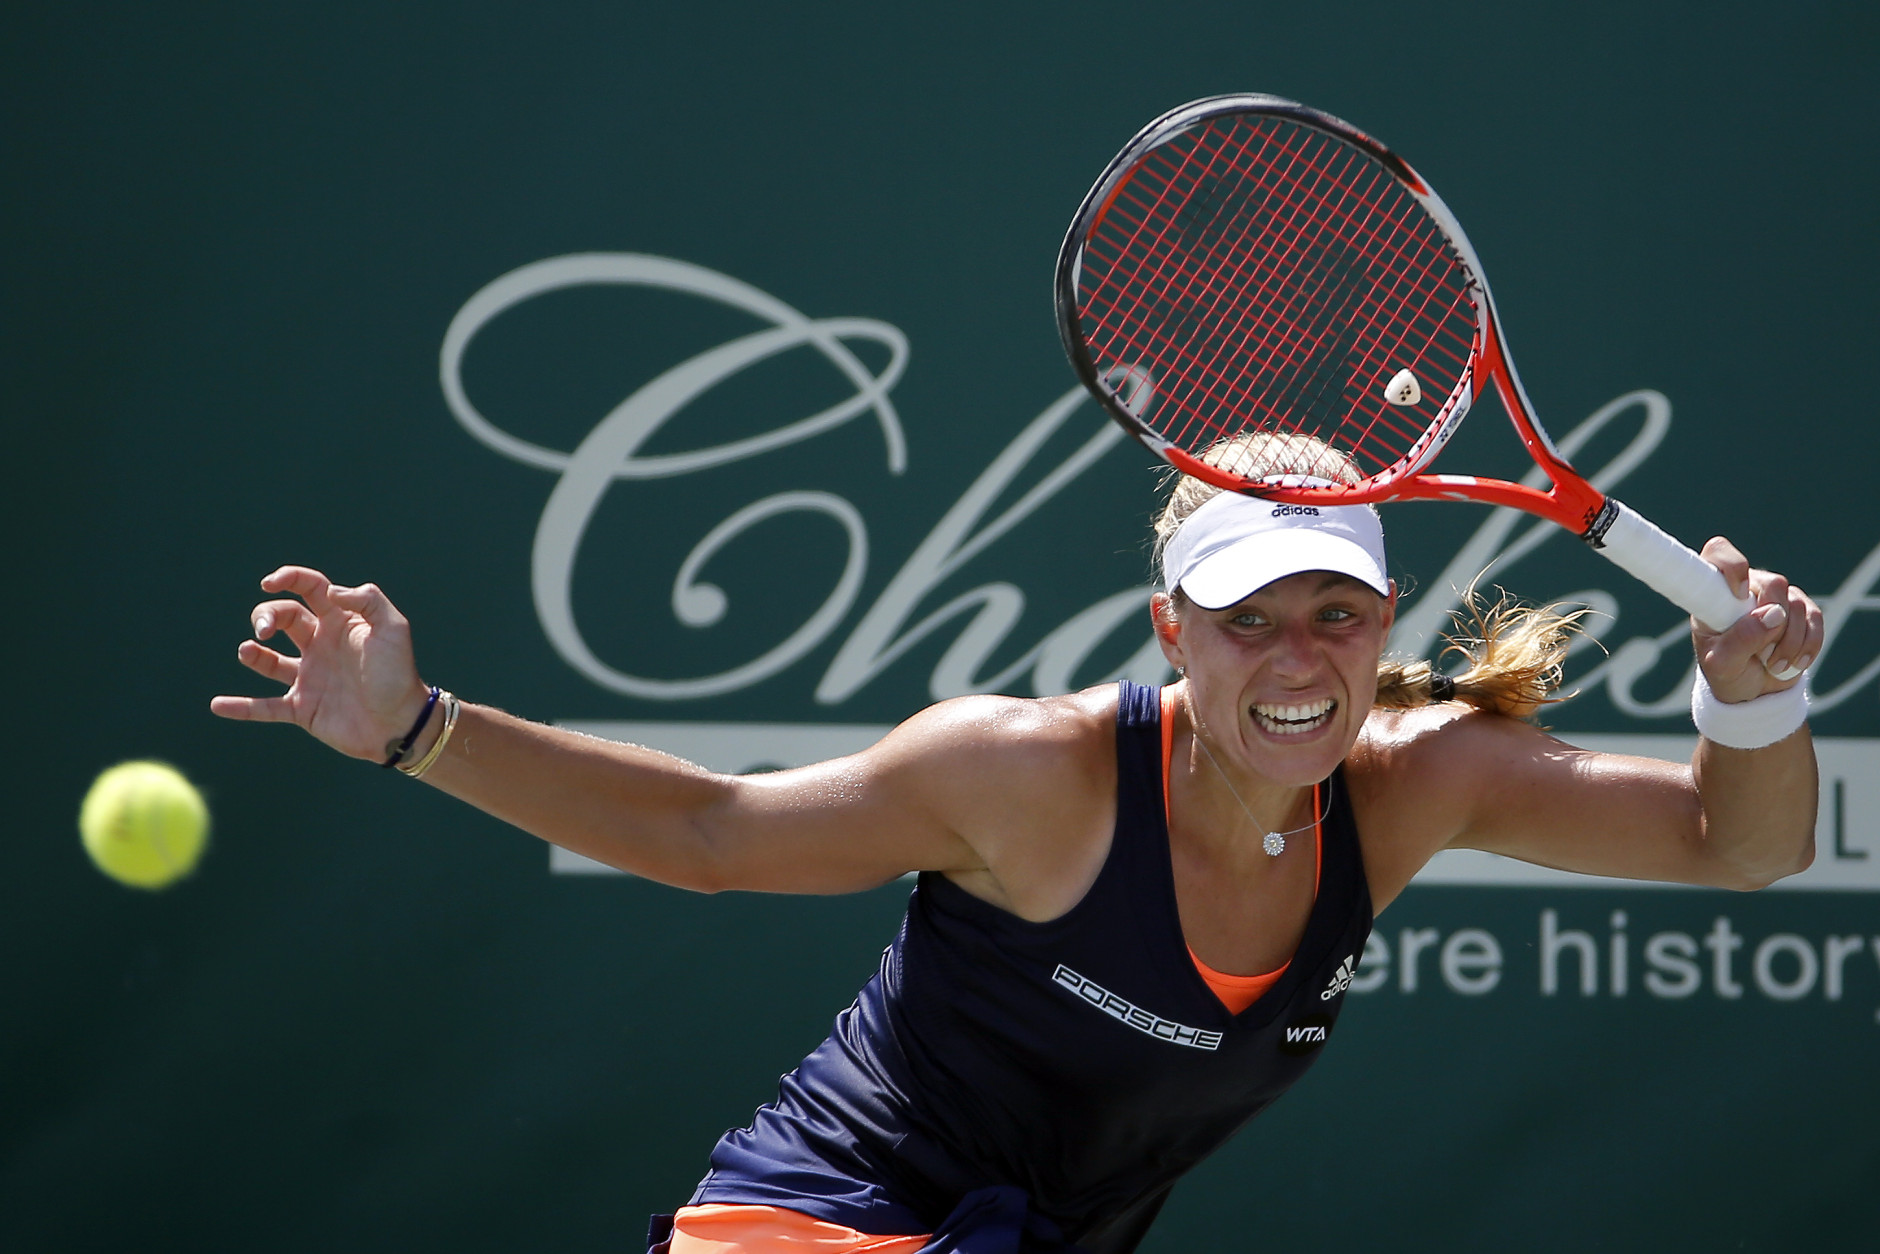 Kerber Wins Charleston in Thrilling Final Versus Keys